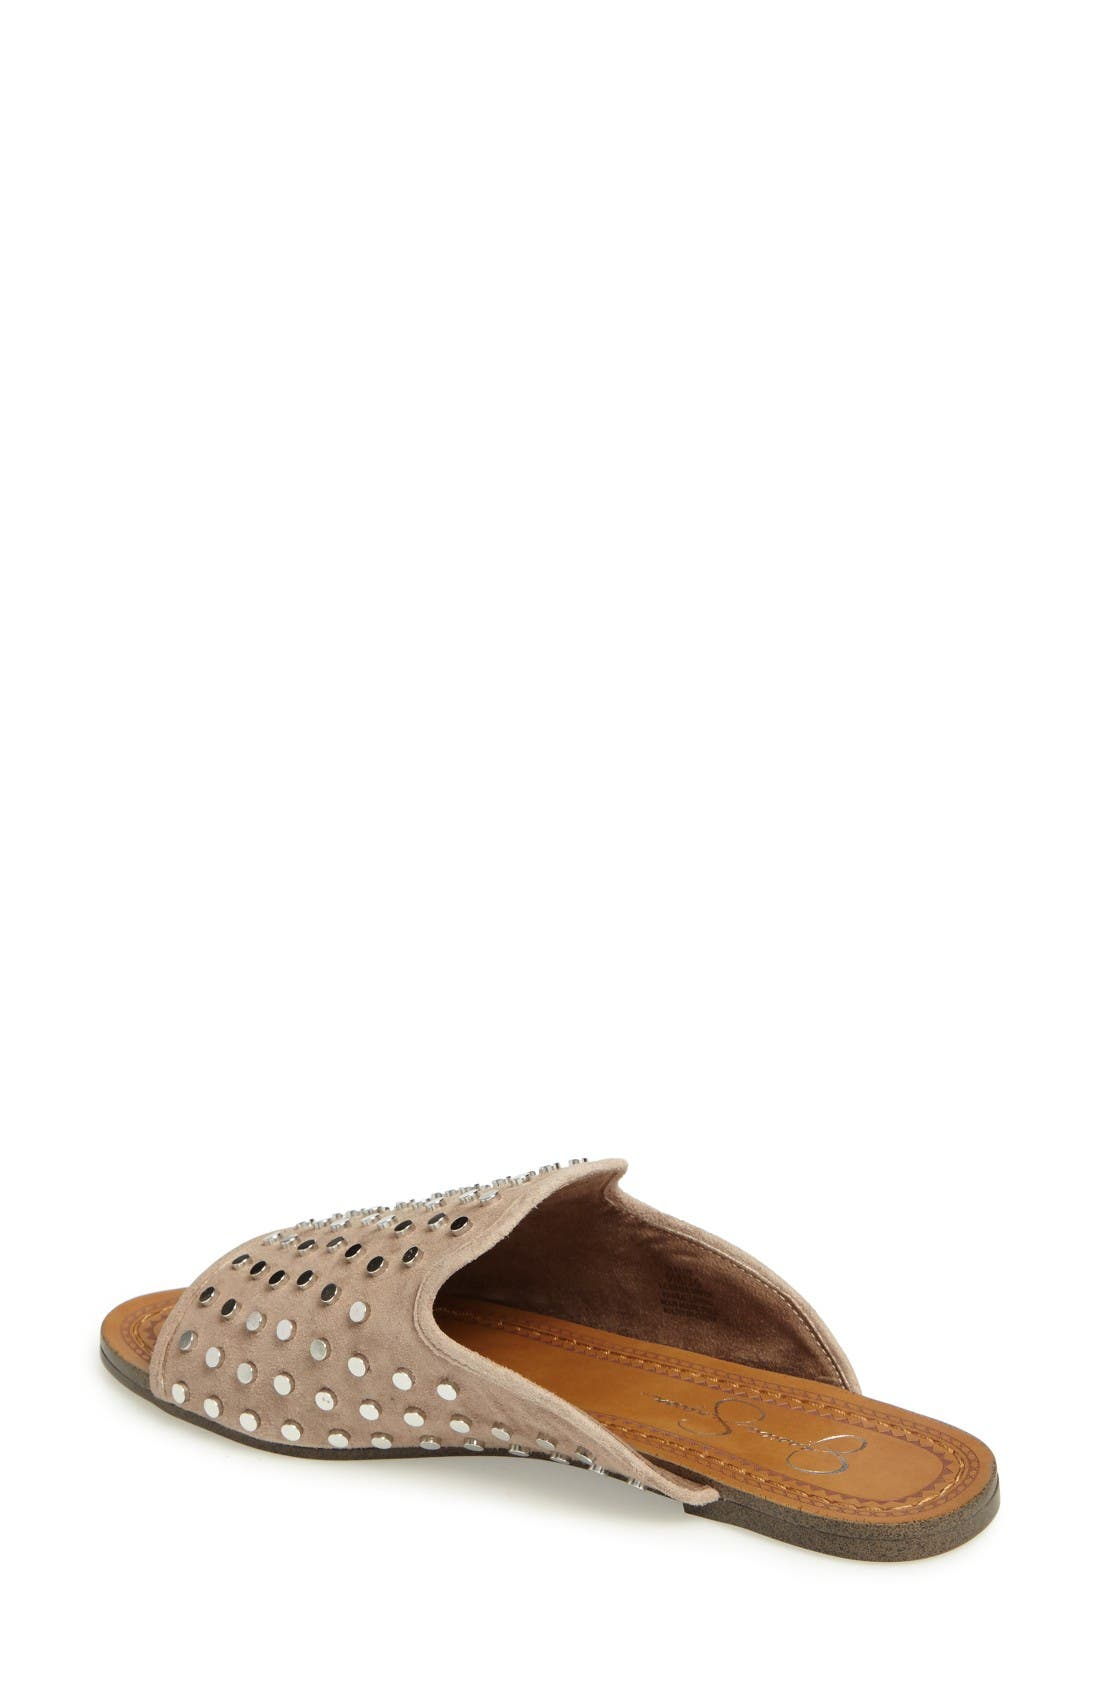 Kloe Studded Slide Sandal,                             Alternate thumbnail 2, color,                             Warm Taupe Suede